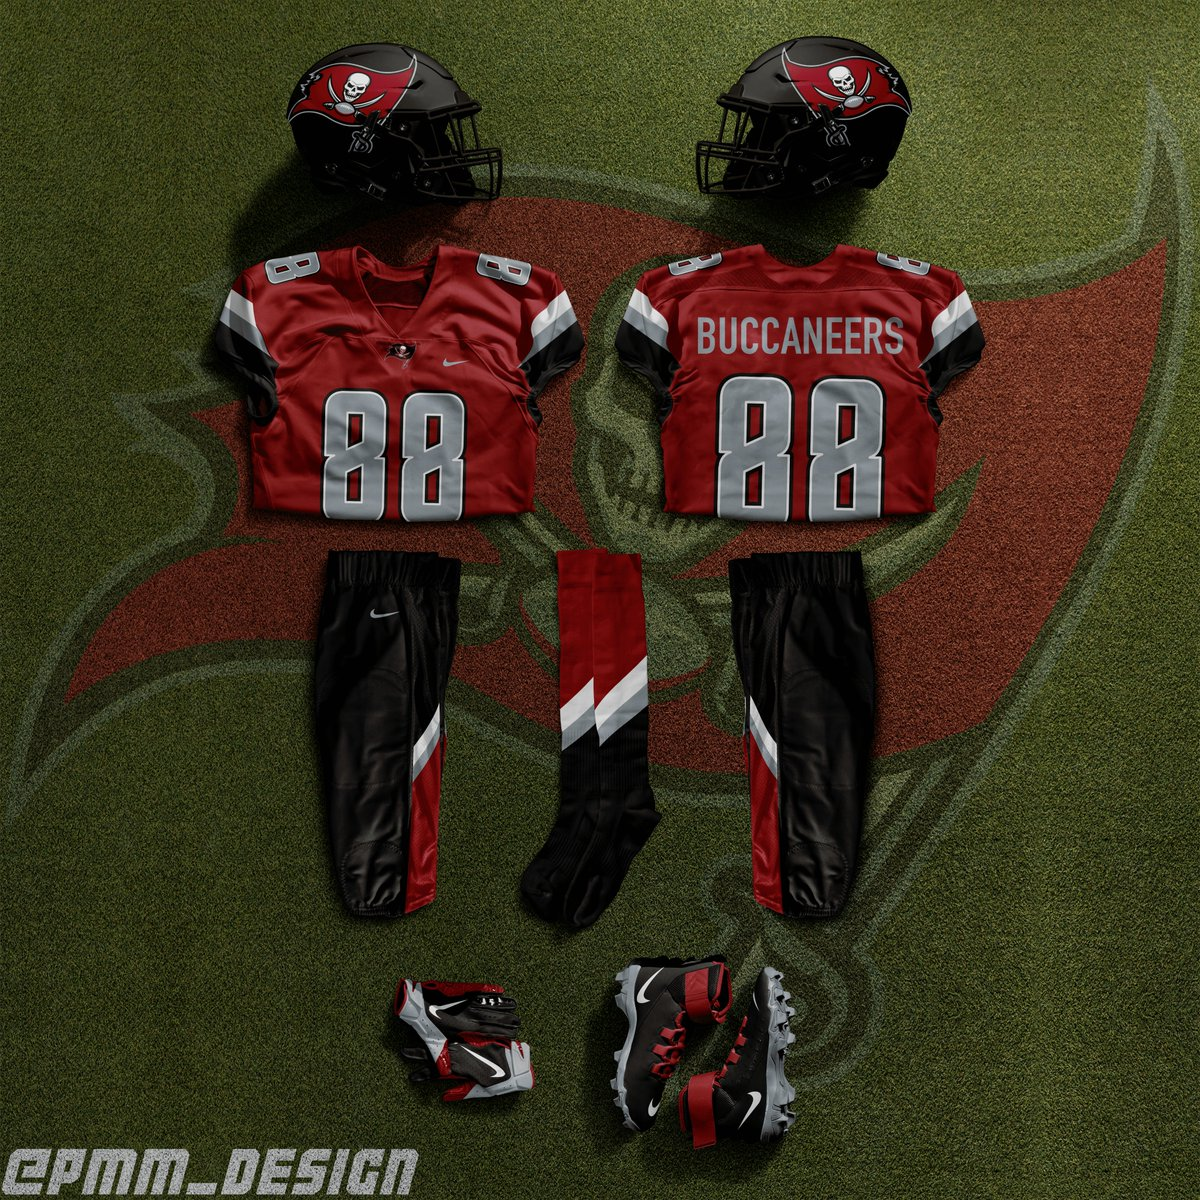 NEW ADDITION: Tampa Bay Buccaneers Uniform Concept v1  121  check out more at:   #tampabay #buccaneers #tampabaybuccaneers #nfl #football #jersey #uniform #concept #concepts #jerseyconcept #unifromconcept #jerseyconcepts #uniformconcepts